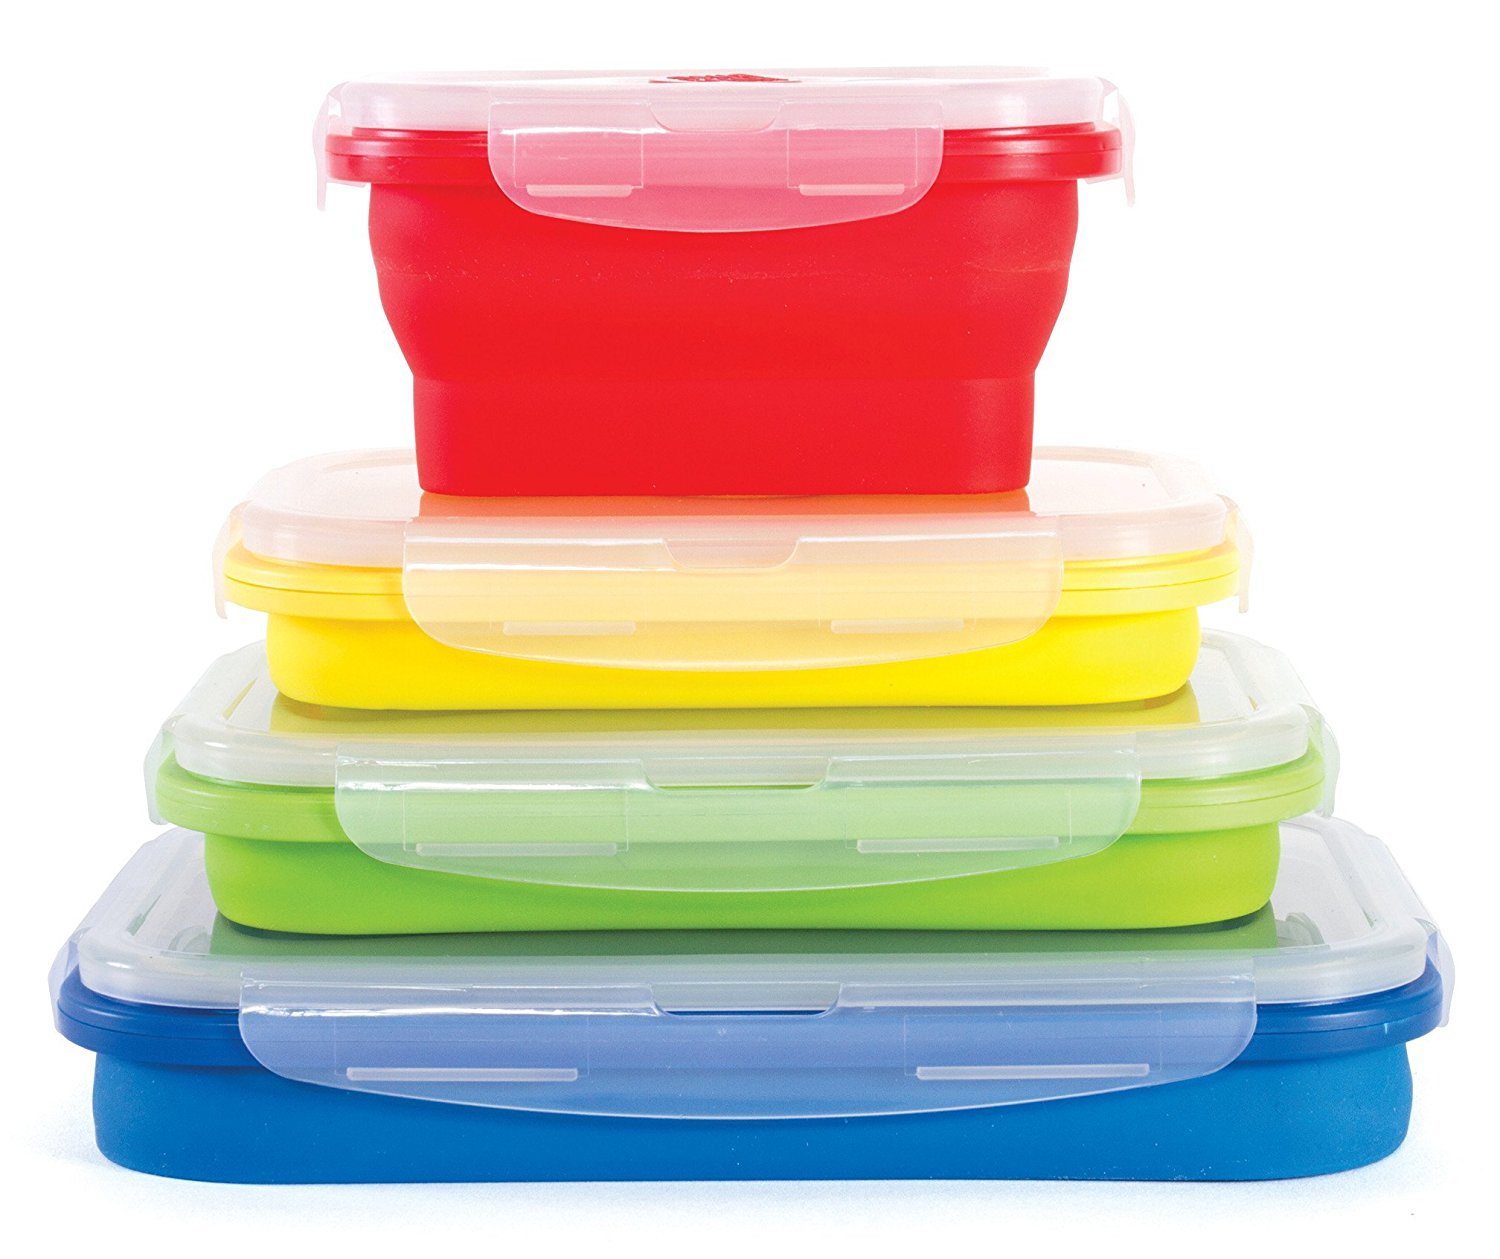 Beau Thin Bins Set Of 4 Square Silicone Collapsible Food Storage Containers BPA  Free, Microwave, Dishwasher And Freezer Safe   Walmart.com